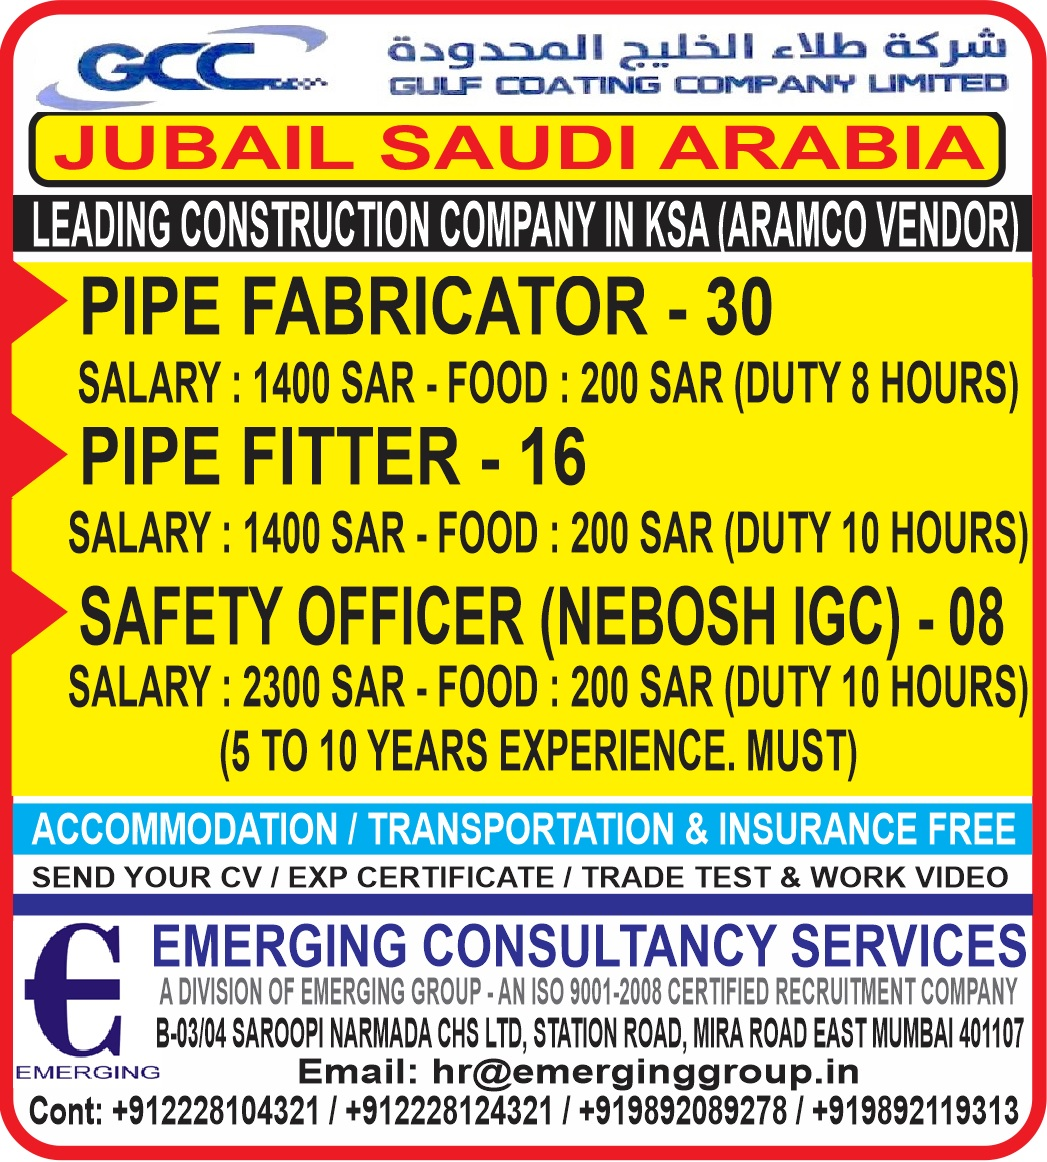 Hvac Contractors In Jubail